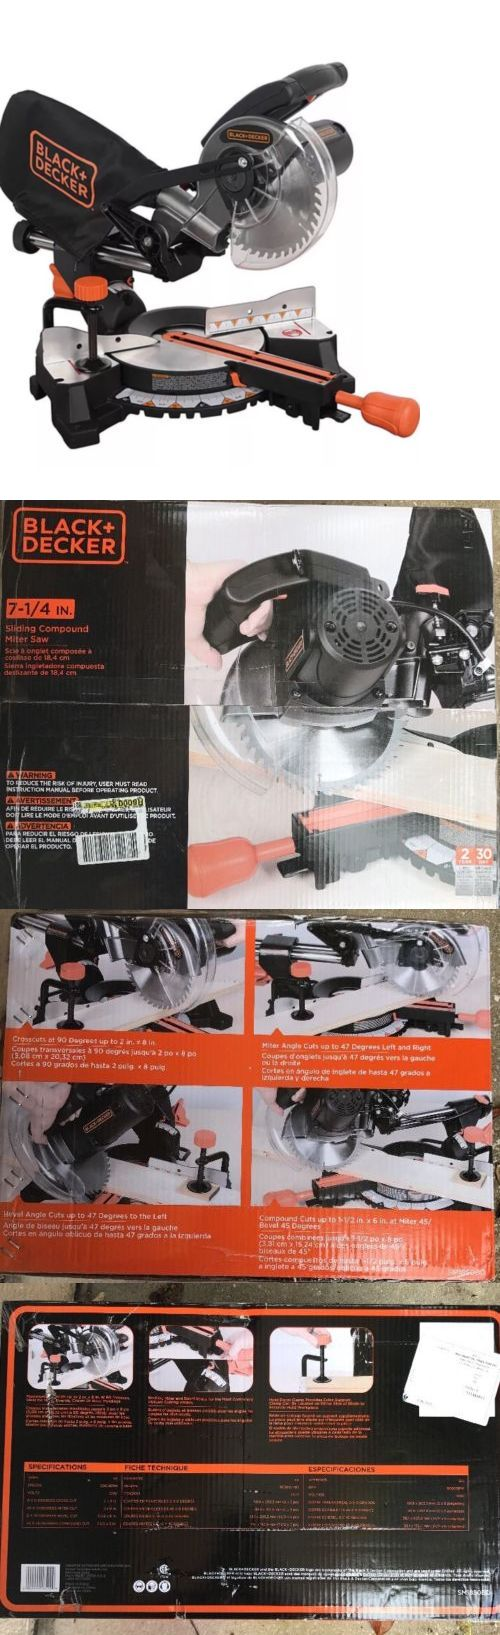 Miter and Chop Saws 20787: Black And Decker 9 Amp 7-1 4 In. Sliding Compound Miter Saw Sm1850bd New -> BUY IT NOW ONLY: $99.3 on eBay!